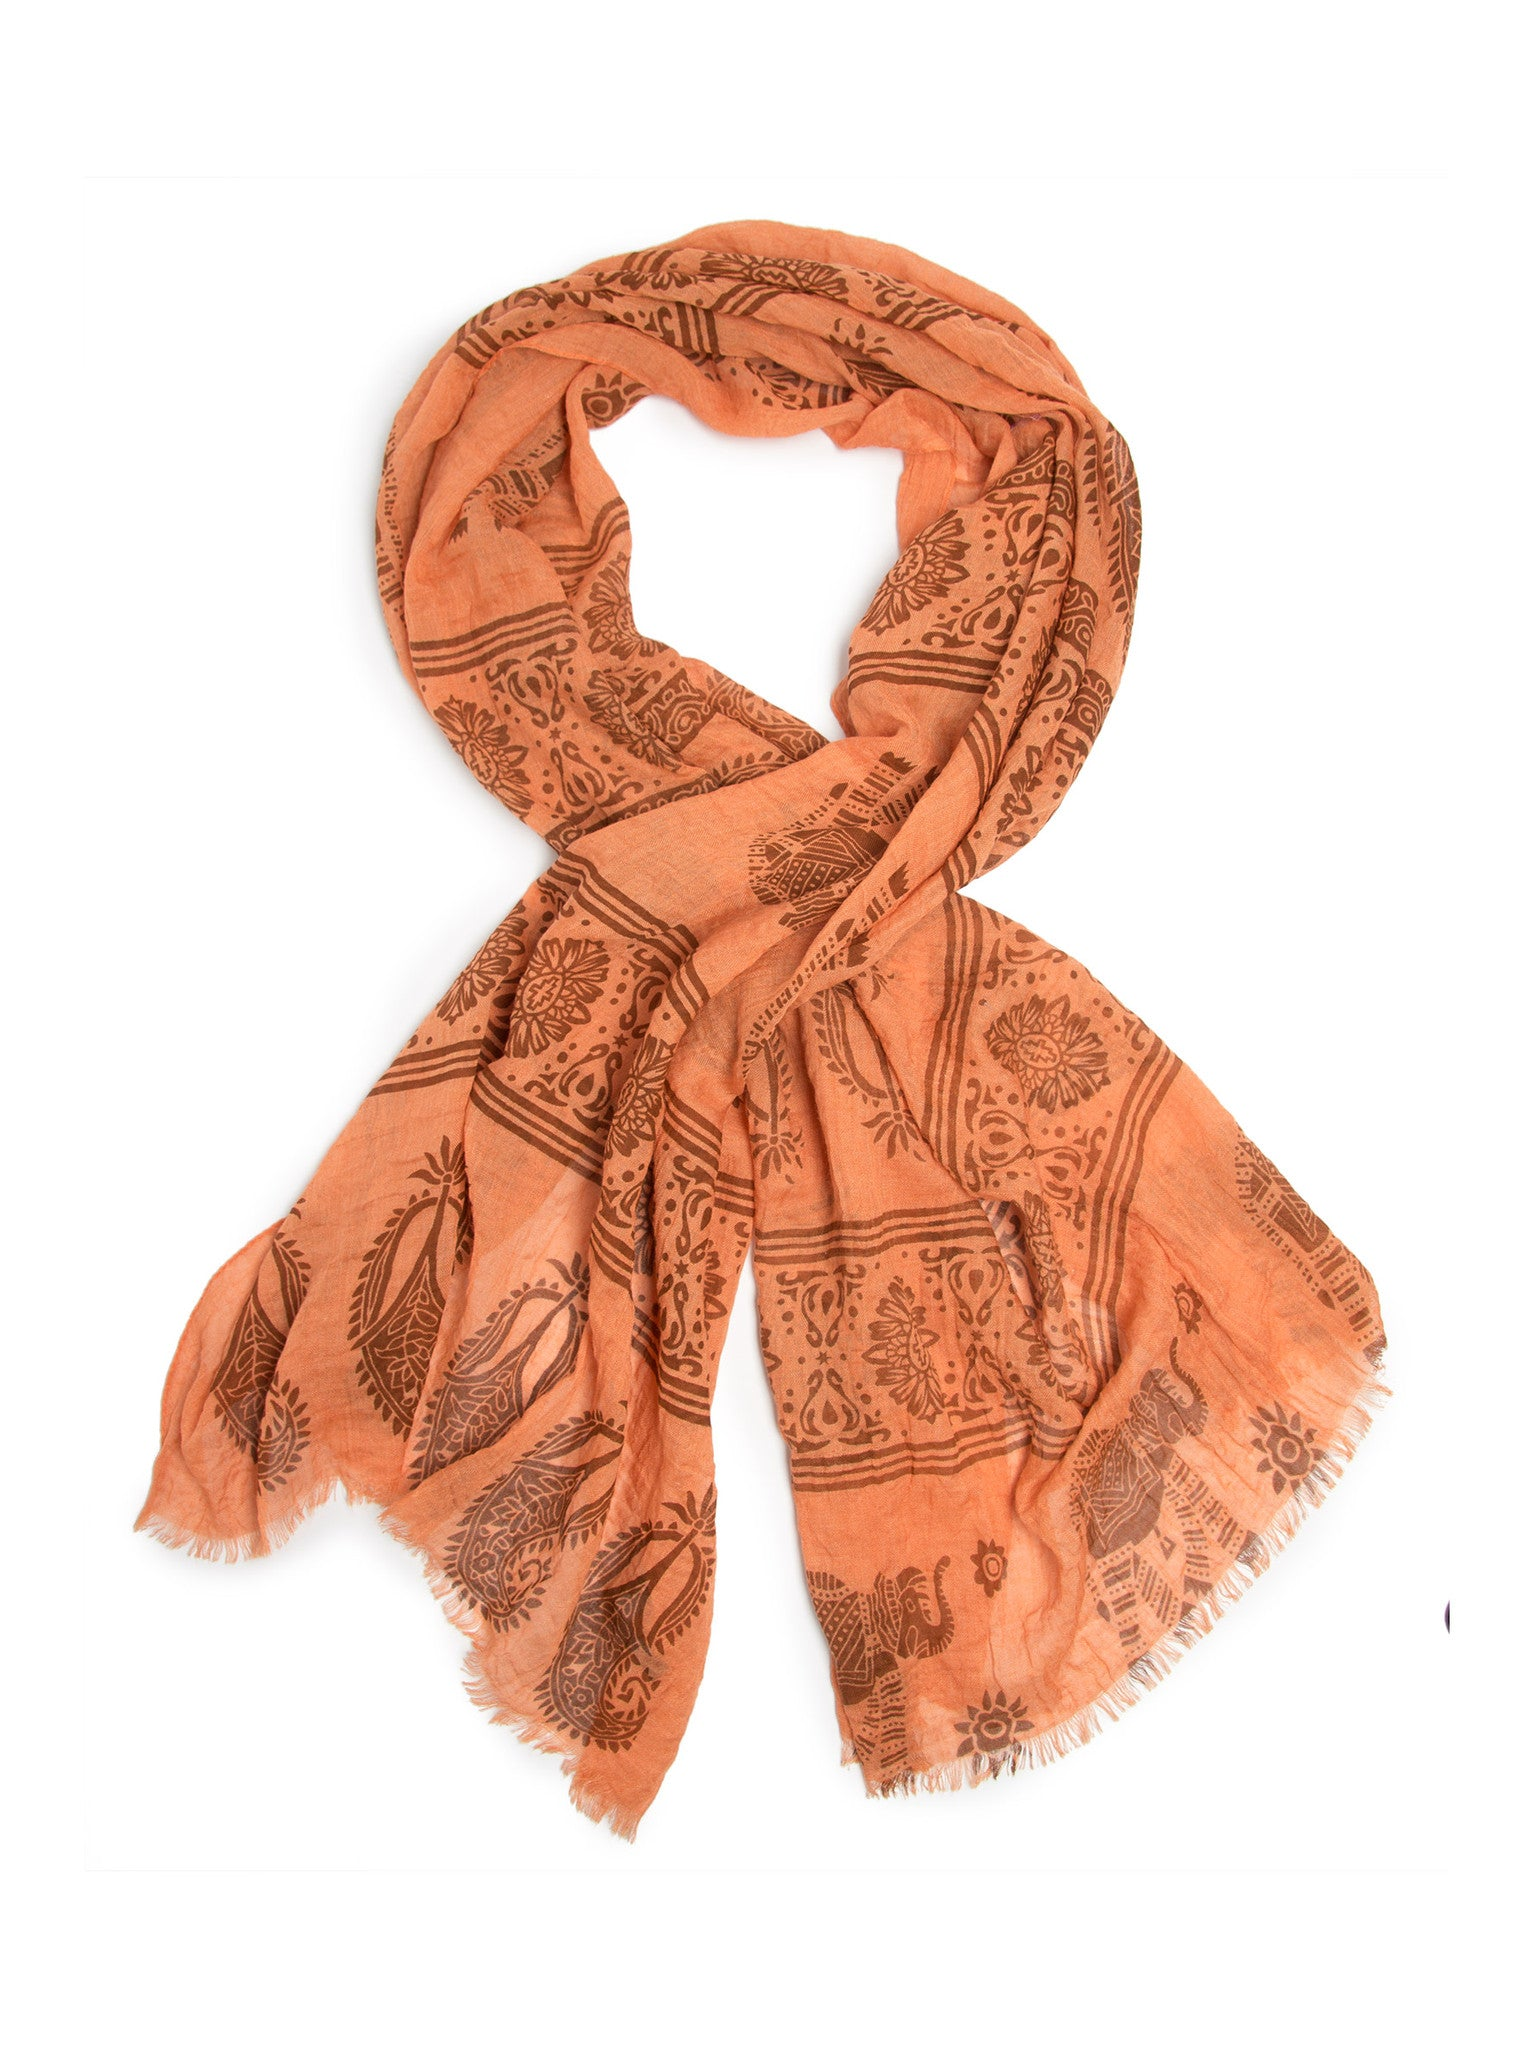 Scarves - Gajai Shawl,100% Cotton Paisley Indian Elephant Print Scarf -(Orange / One Size) Bohomonde  - 4